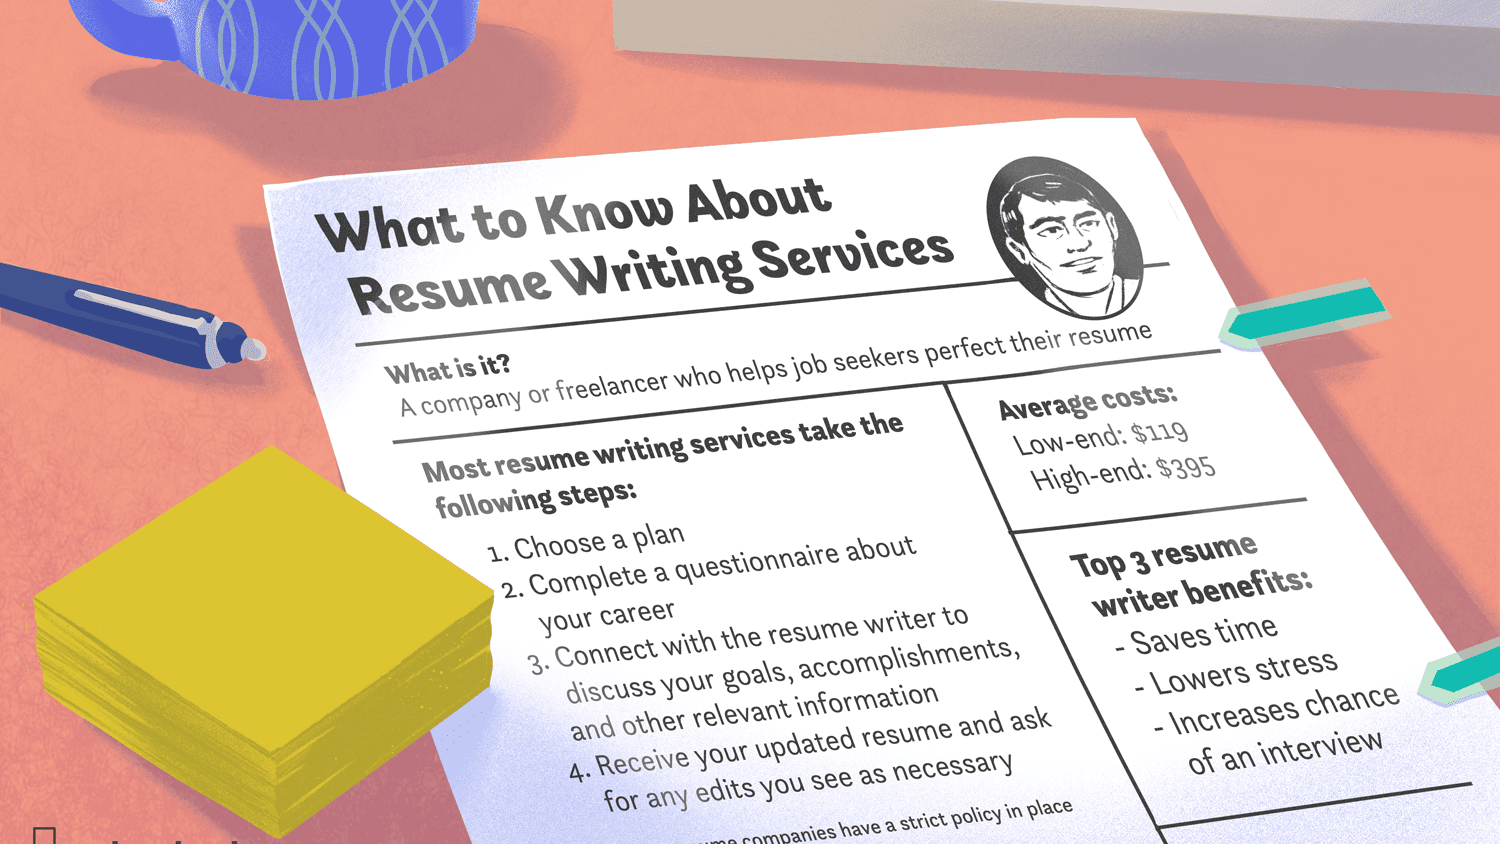 How to find a good resume writing service